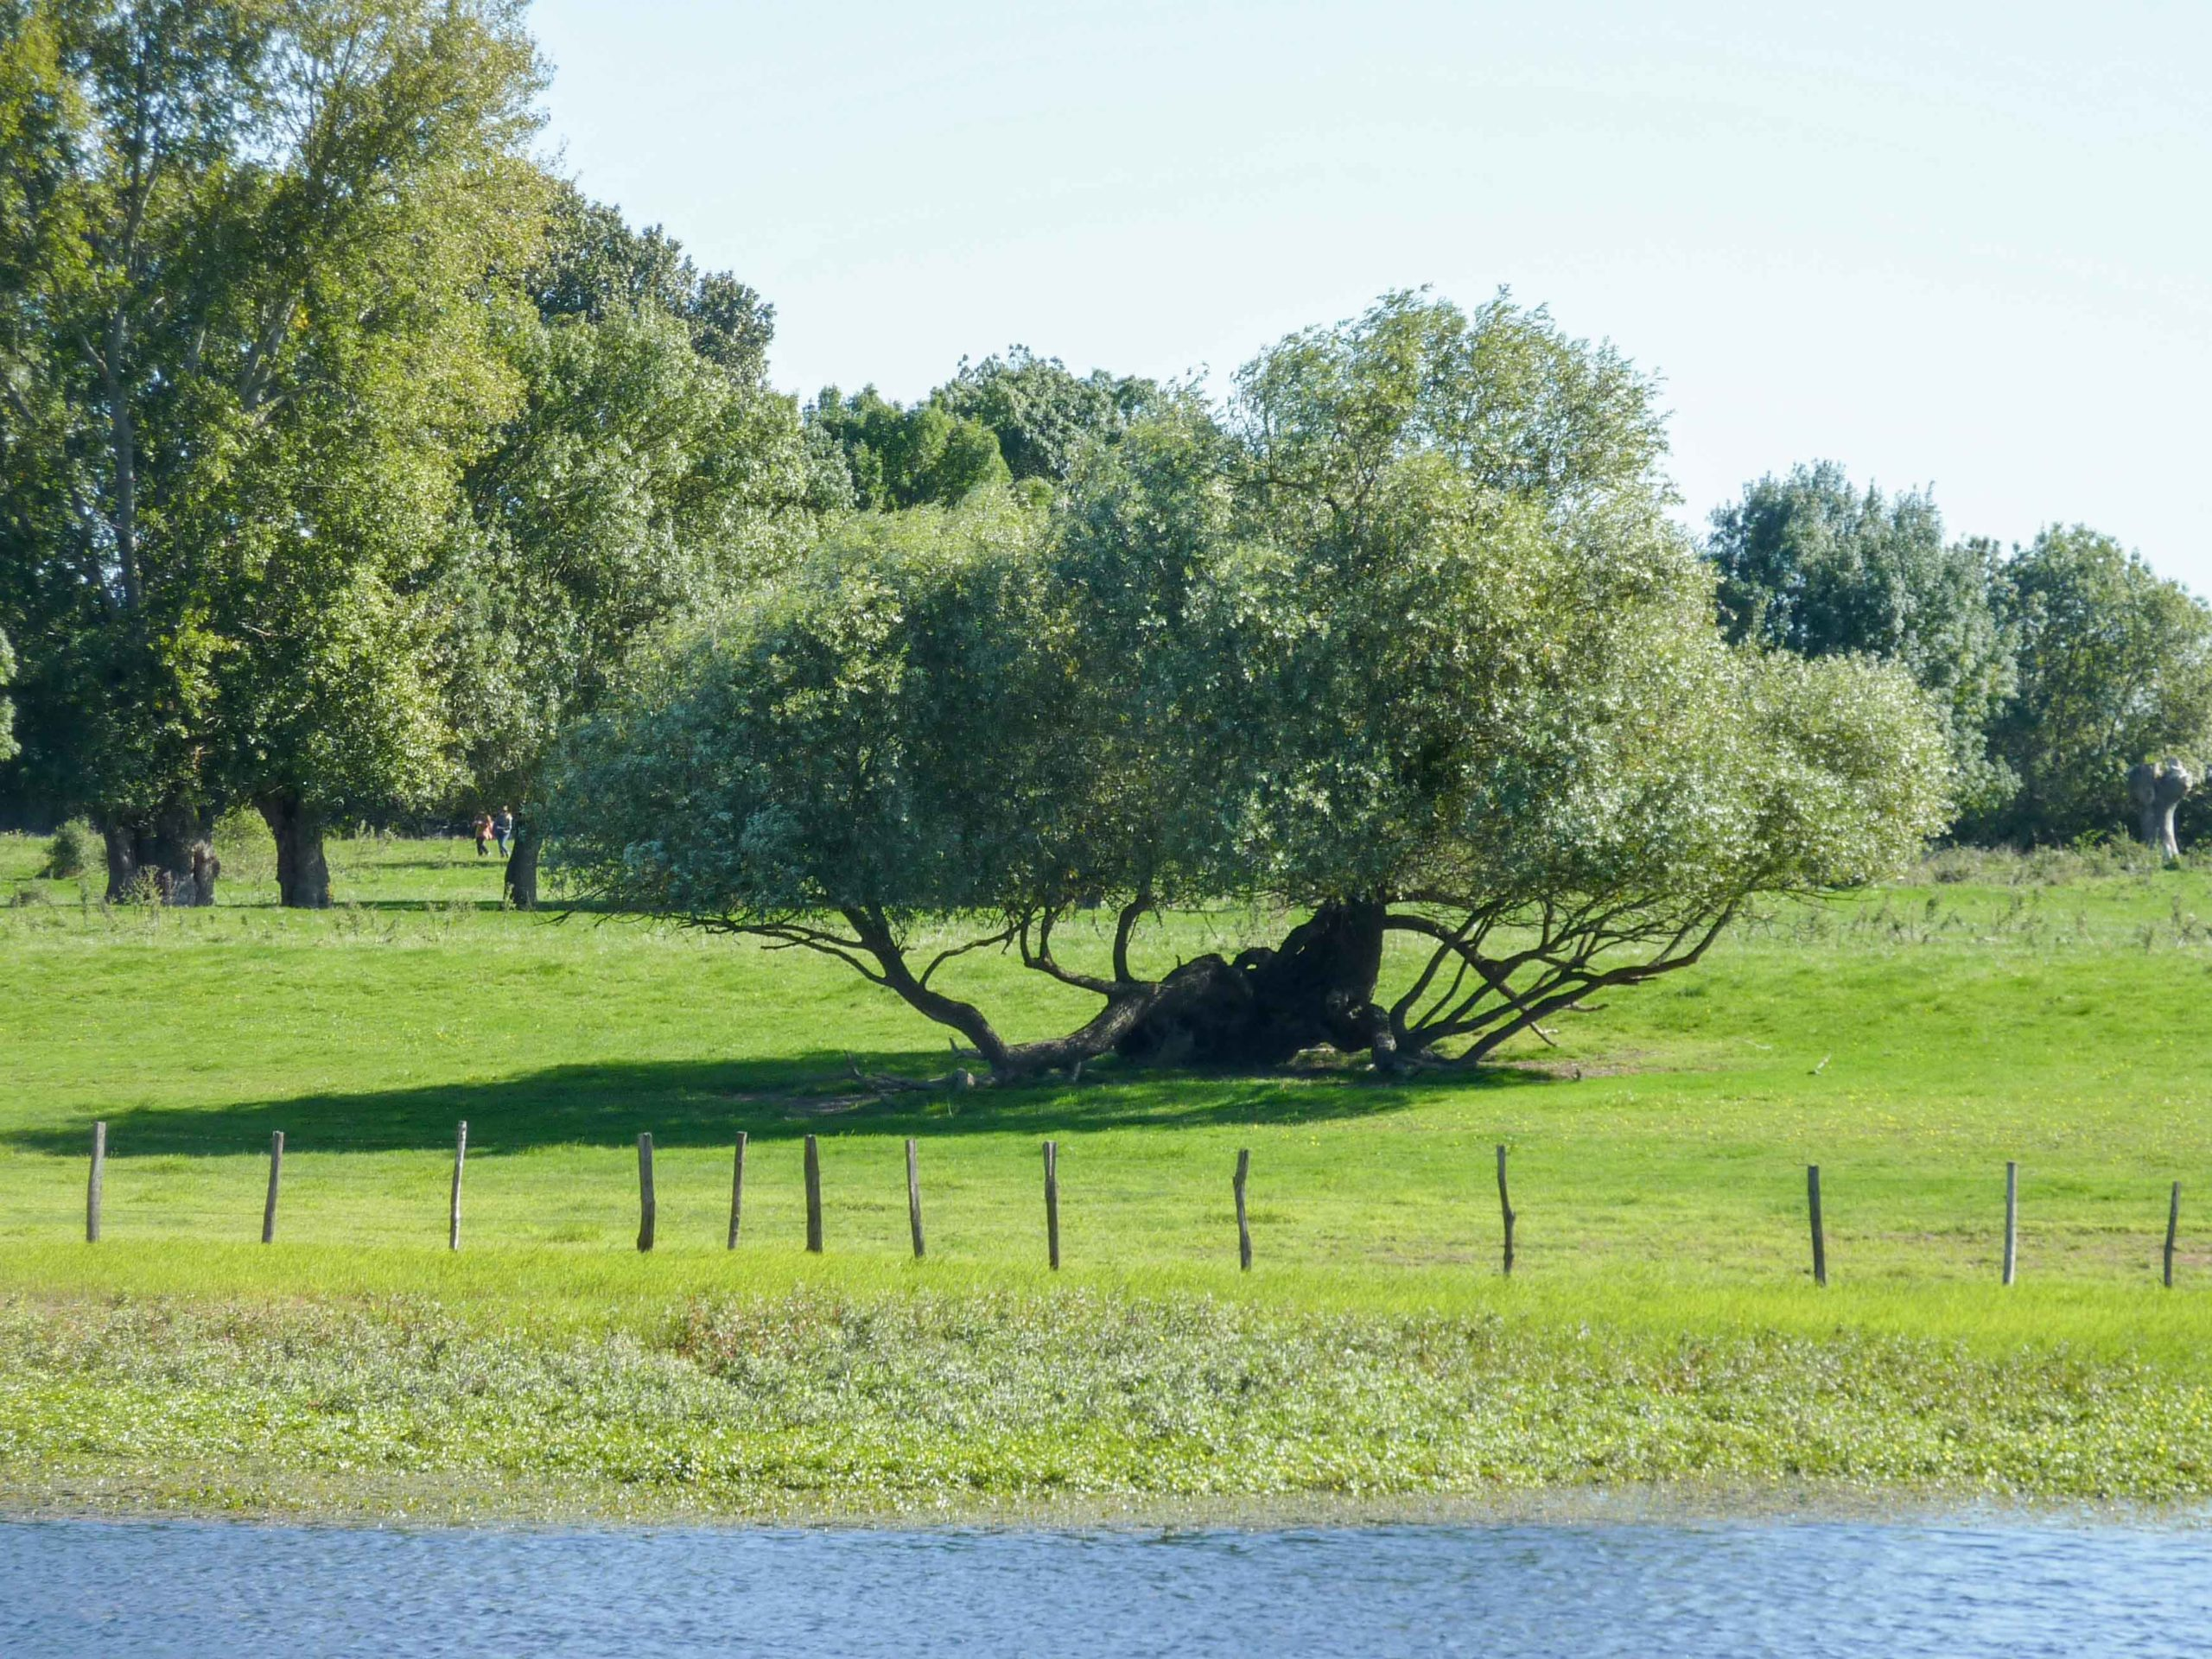 Land art Ingrandes (14)